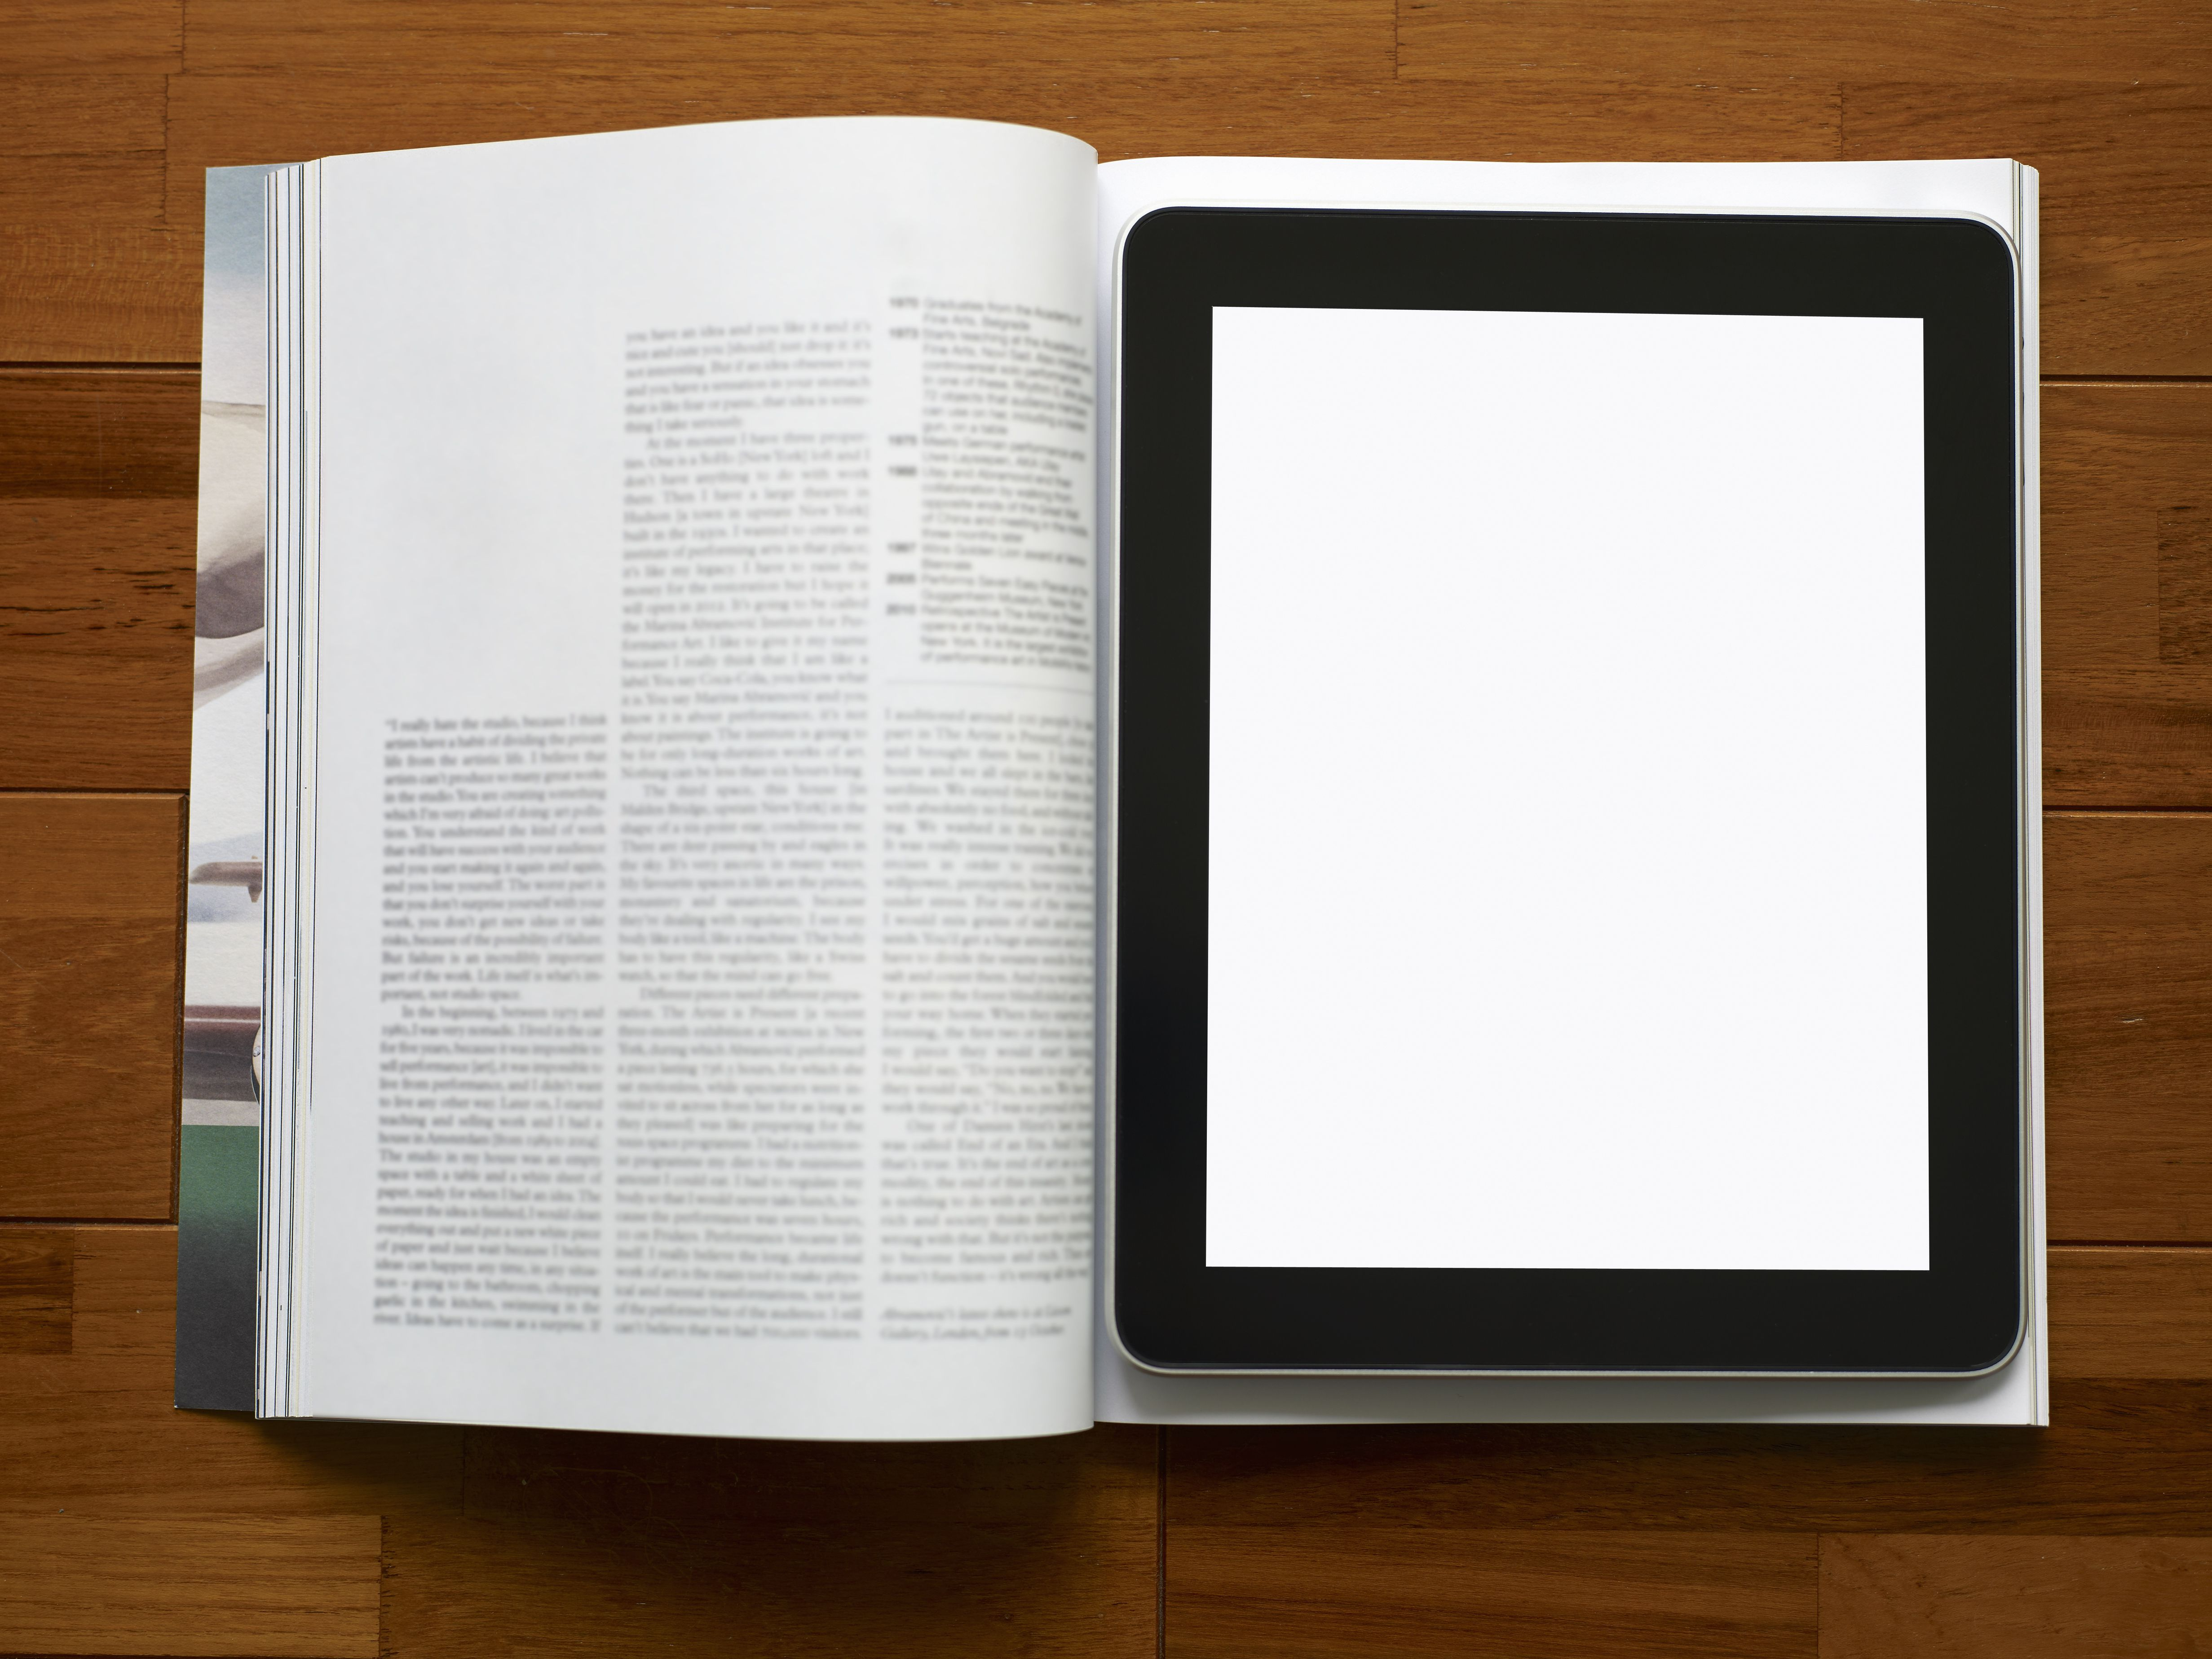 Tablet computer and magazine.